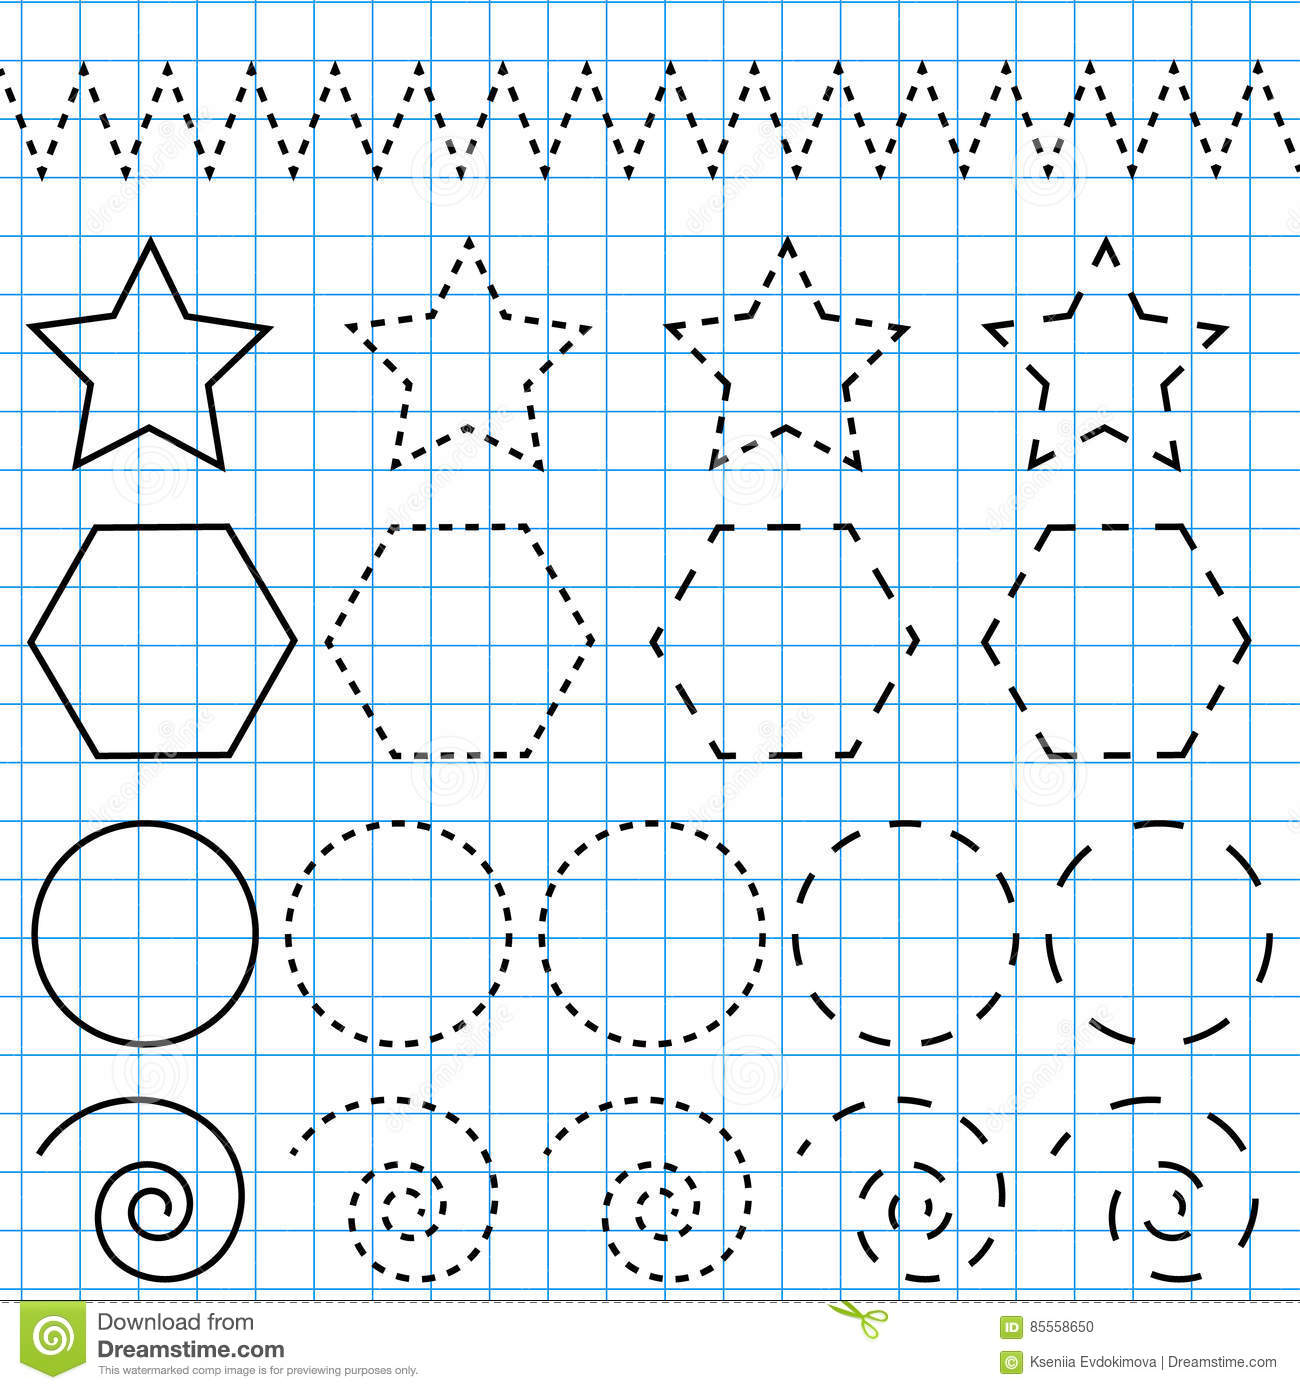 Vector Drawing Lines Worksheets : Handwriting practice sheet educational children game